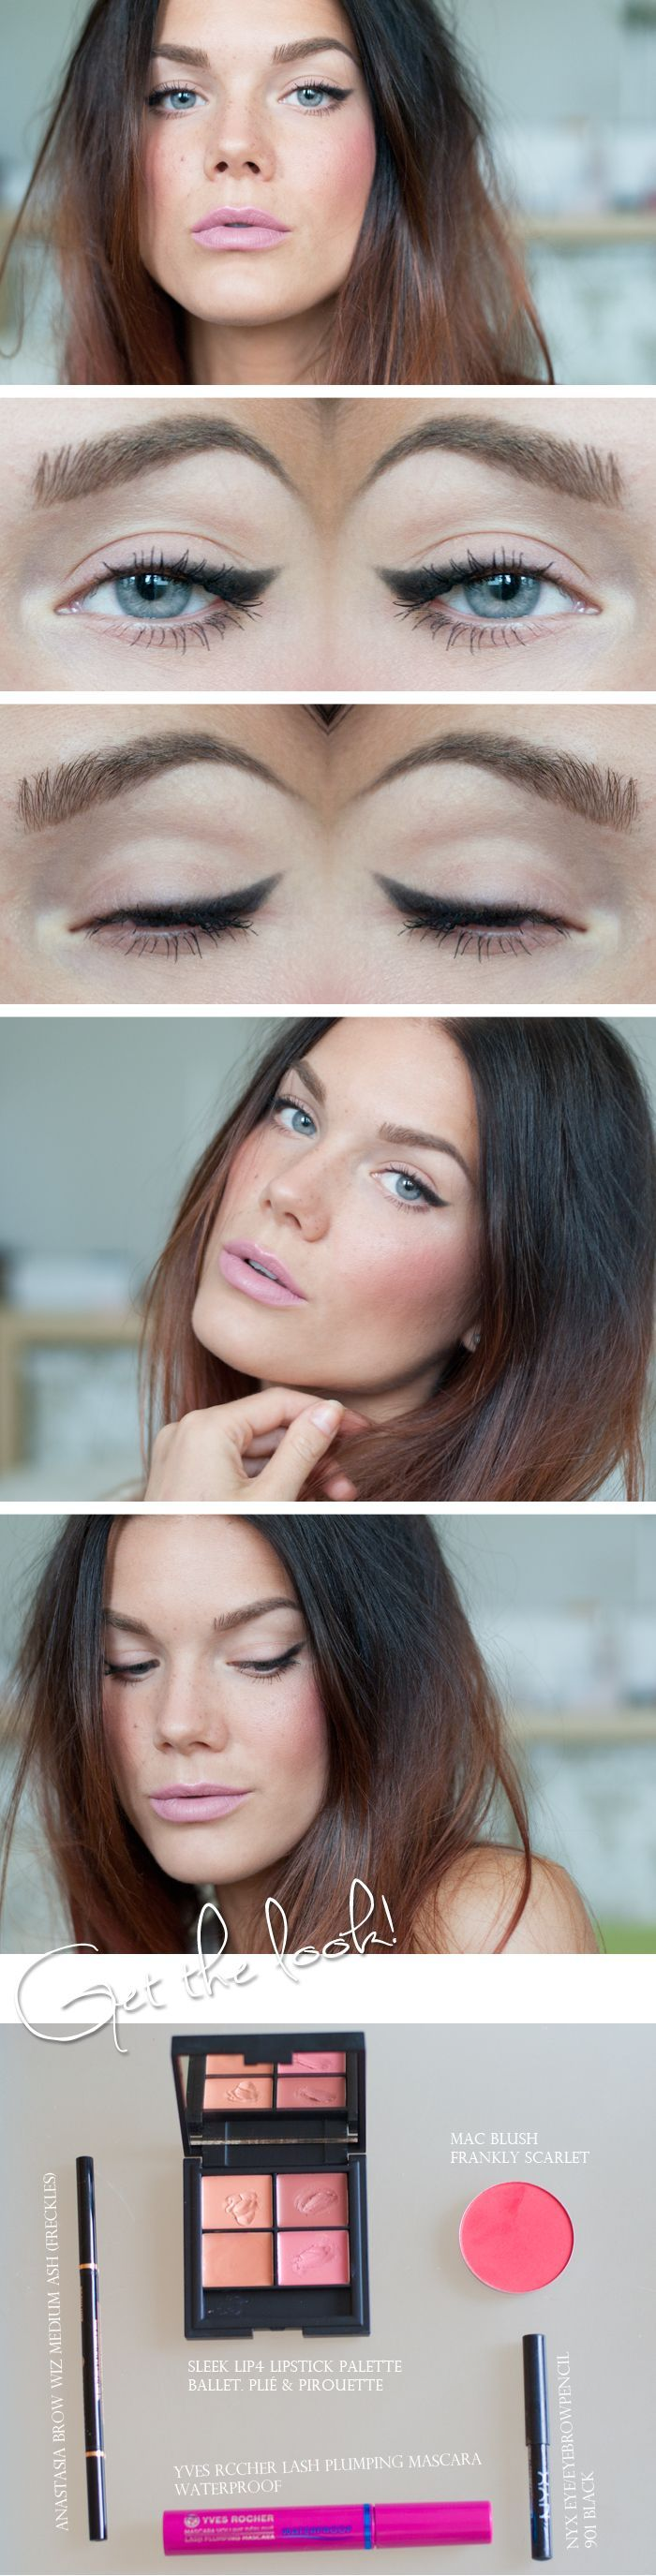 soft cat eye + rosy cheeks + pastel lip.: Soft Cat, Linda Hallberg, Cat Eye, Pastel Pink, Pink Lips, Makeup Looks, Pastel Lips, Everyday Makeup, Natural Looks